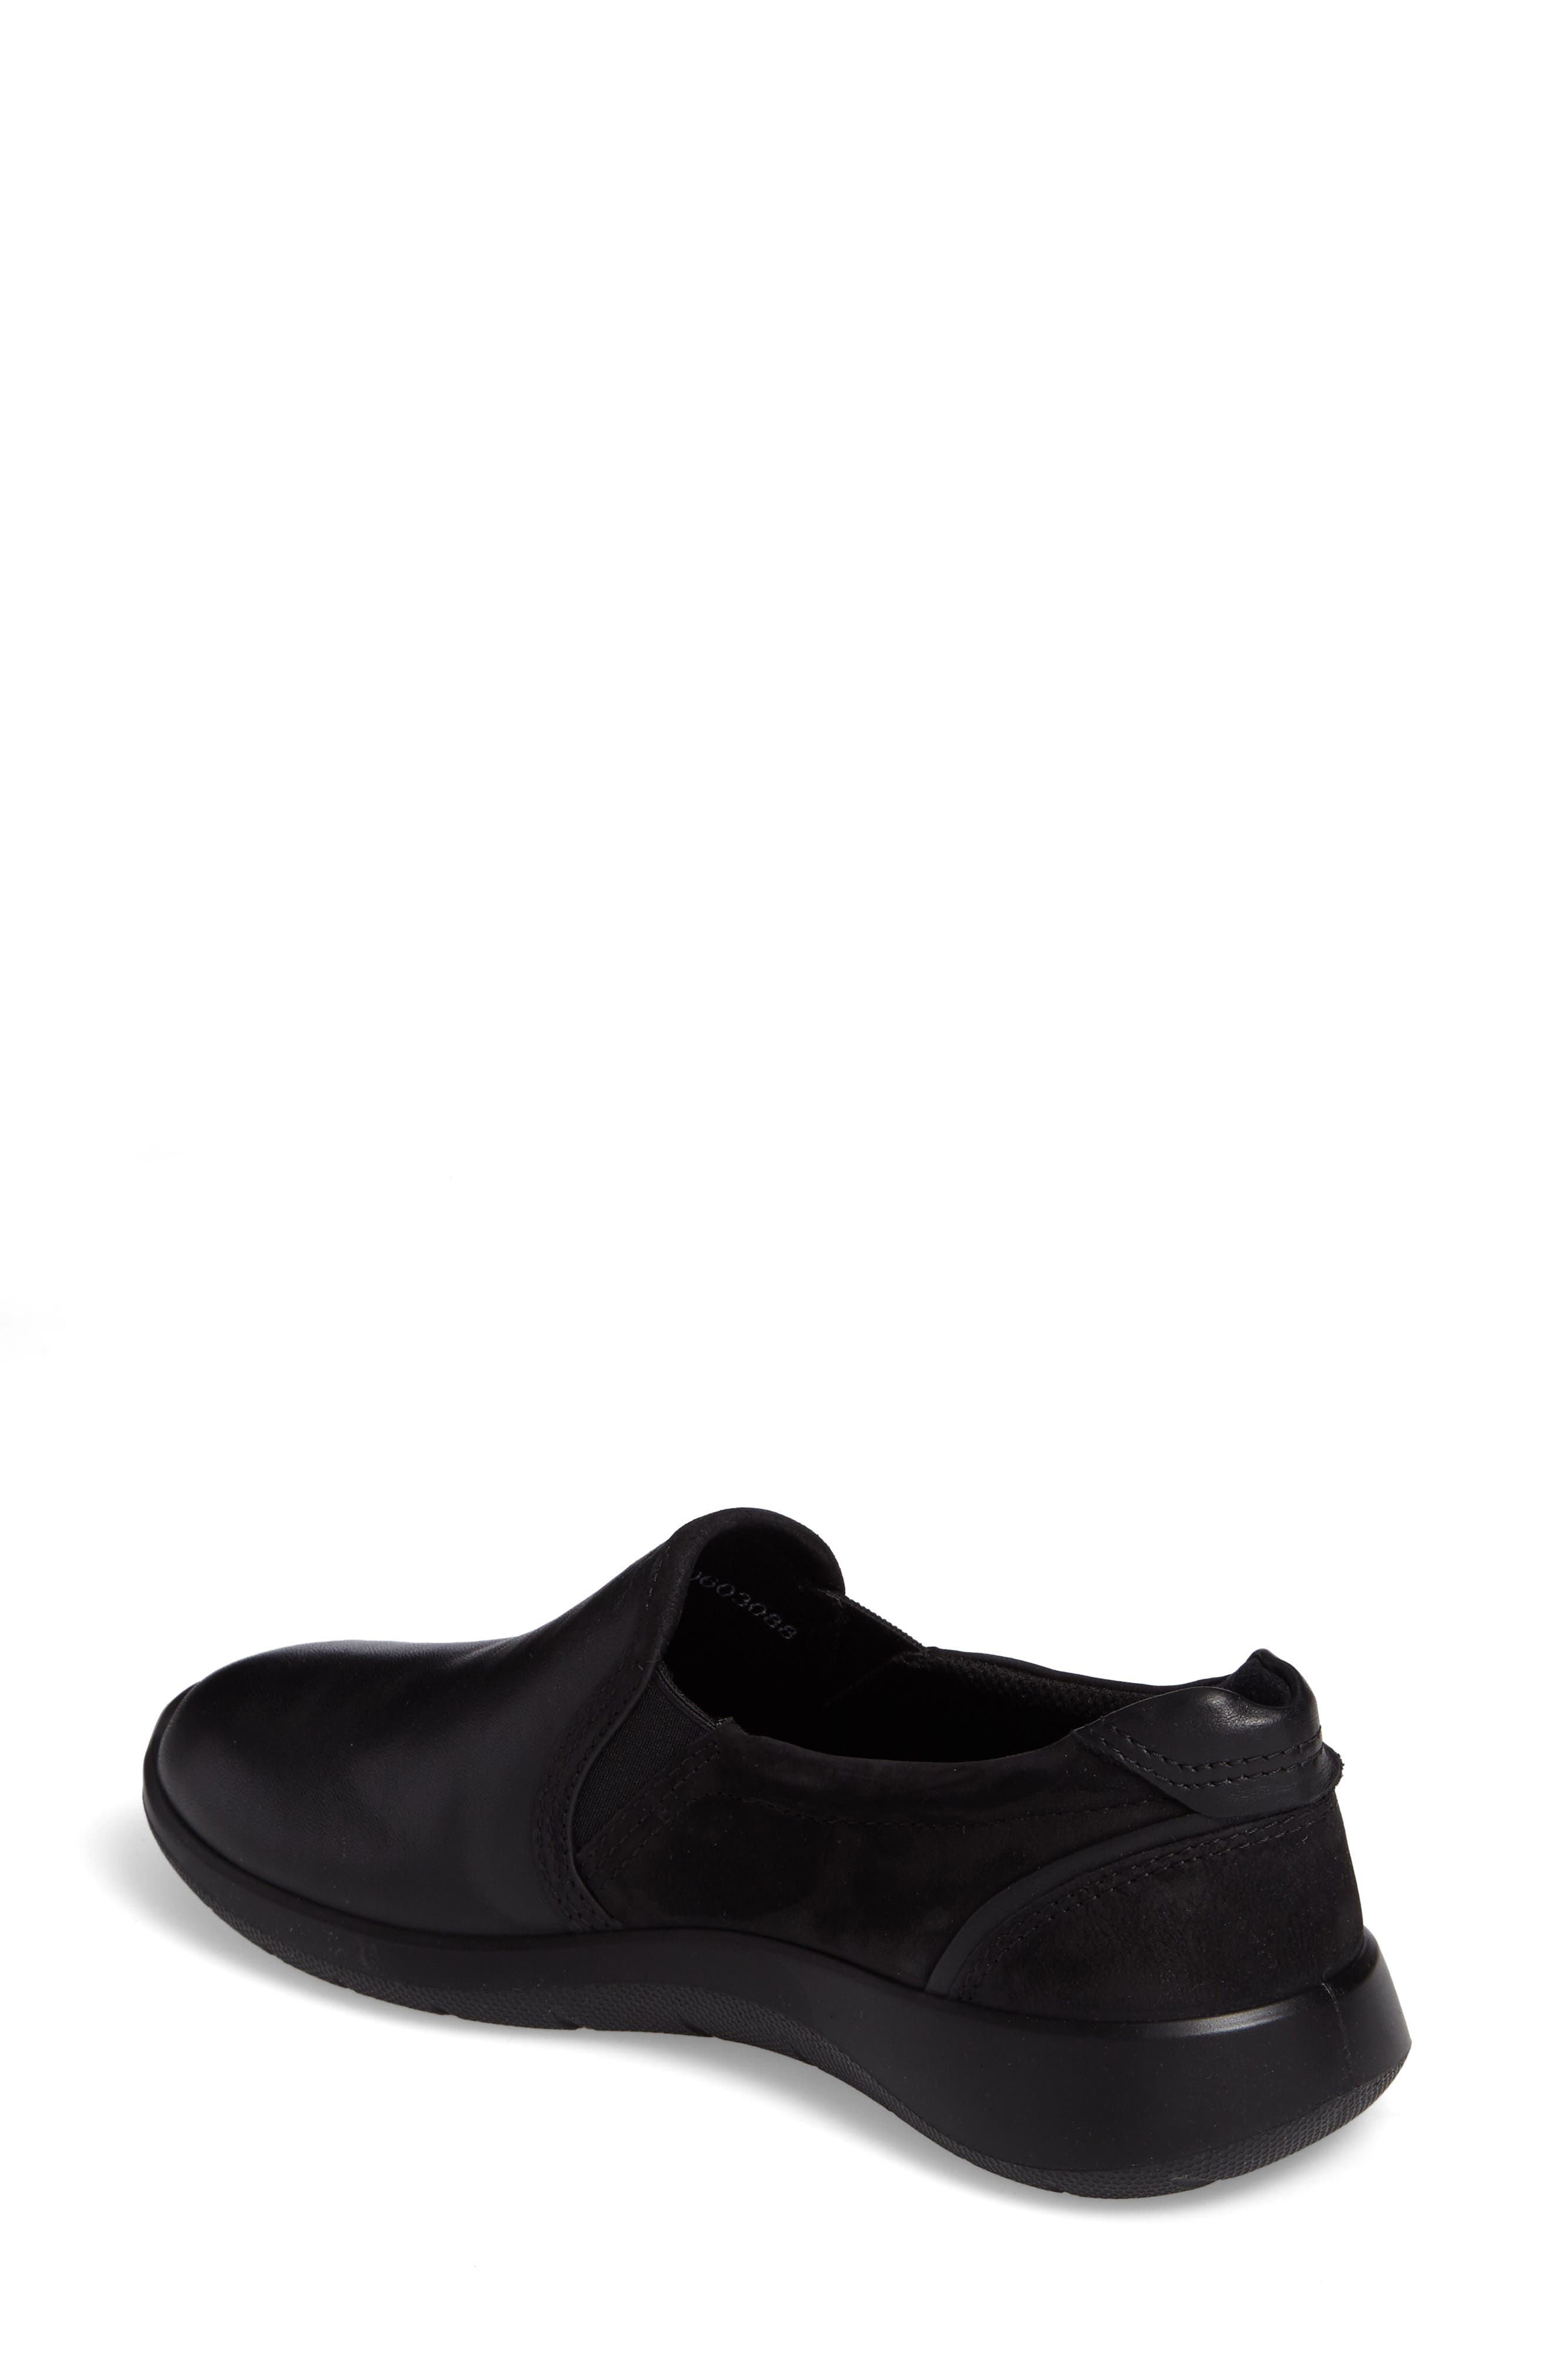 Soft 5 Slip-On Sneaker,                             Alternate thumbnail 2, color,                             Black Leather